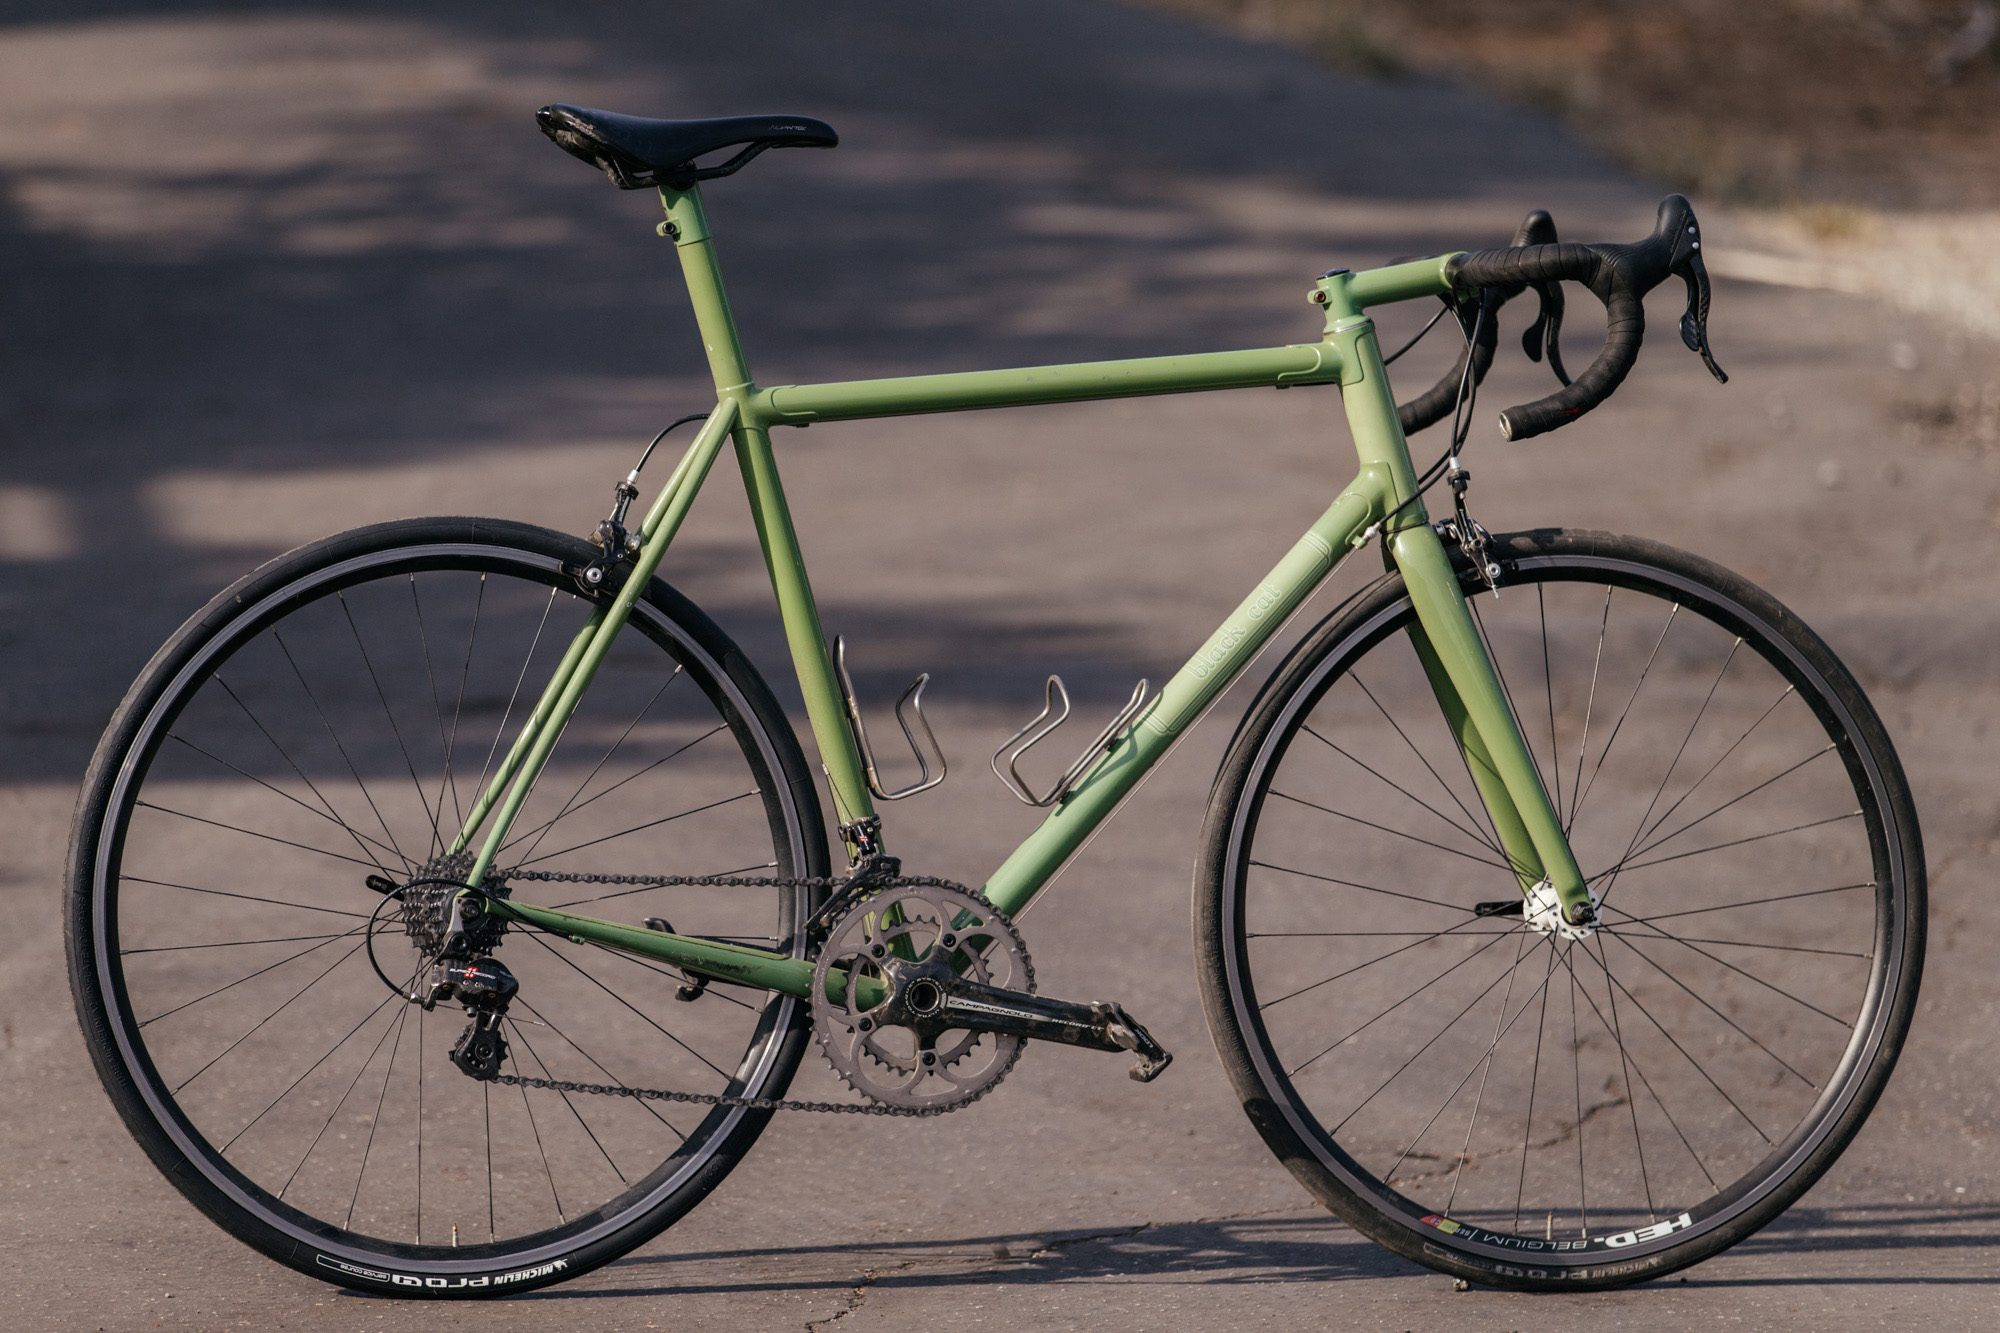 Todd's Black Cat Bicycles Carbon and Steel Road Has 8 Lives Left